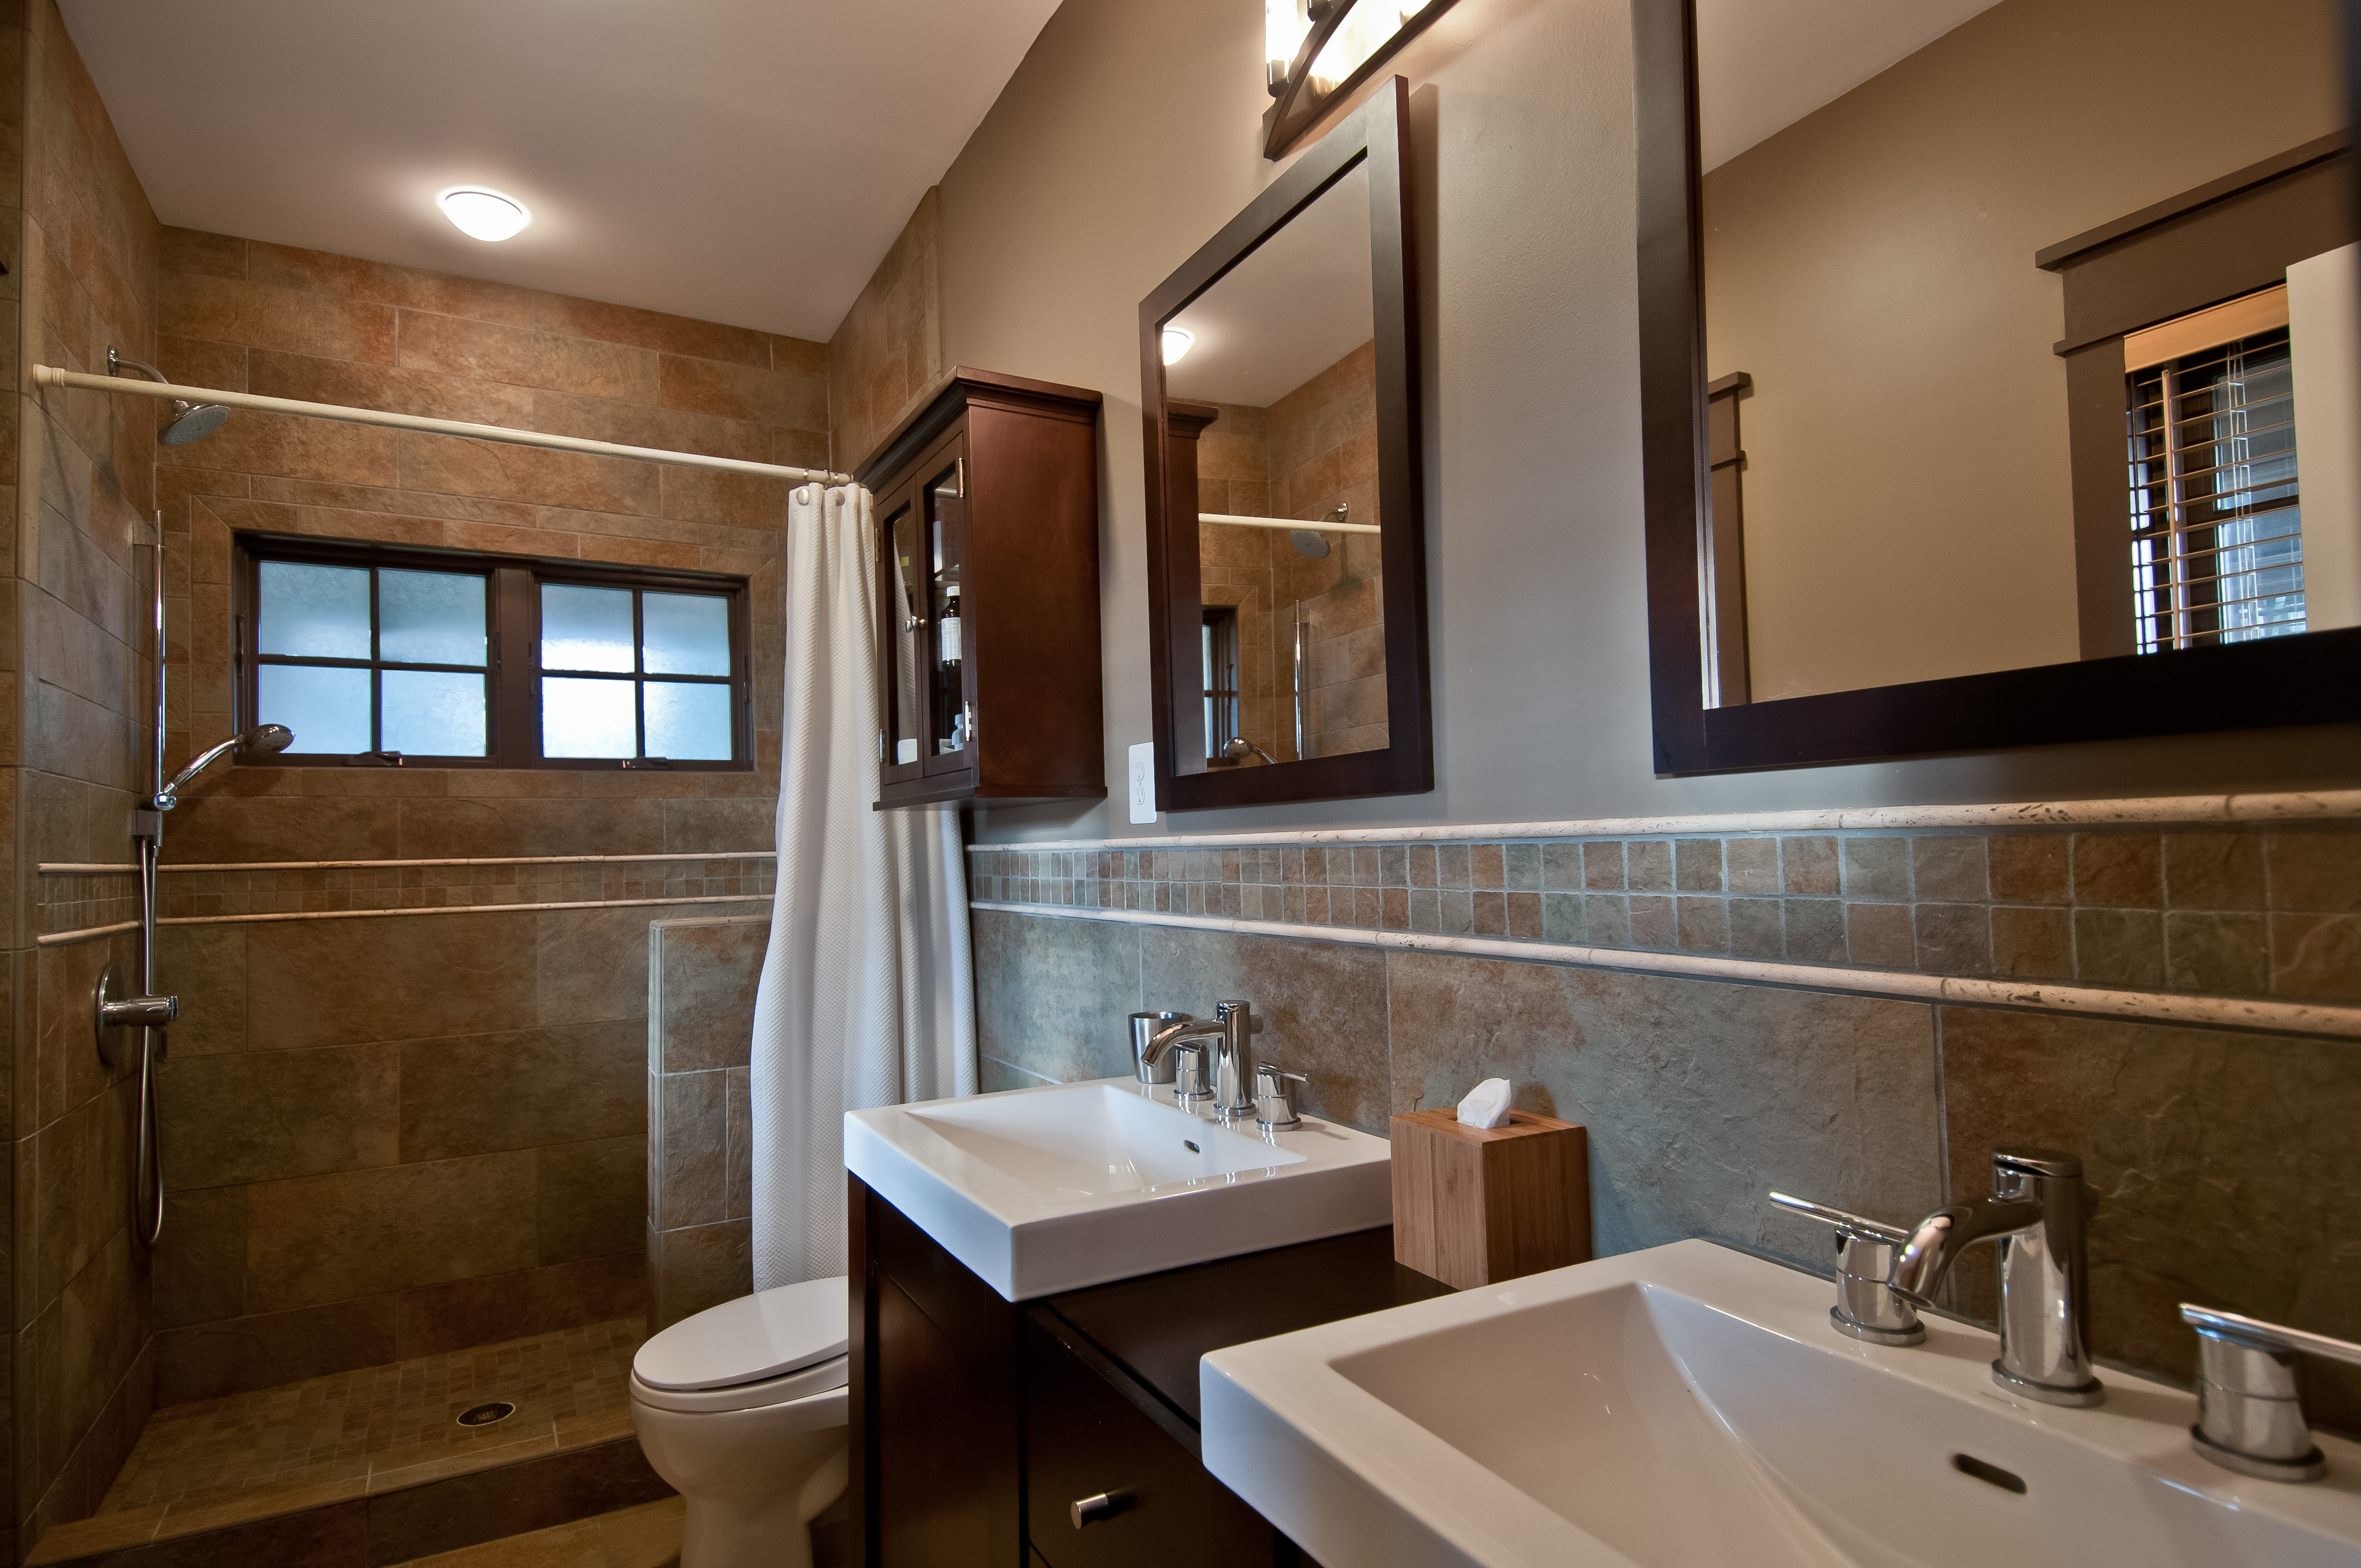 The stone and tile primary bathroom has beautiful natural cherry cabinets and an unenclosed shower stall. Chrome fixtures and dual mirrors above the his-and-hers sinks complement the matching medicine cabinet.